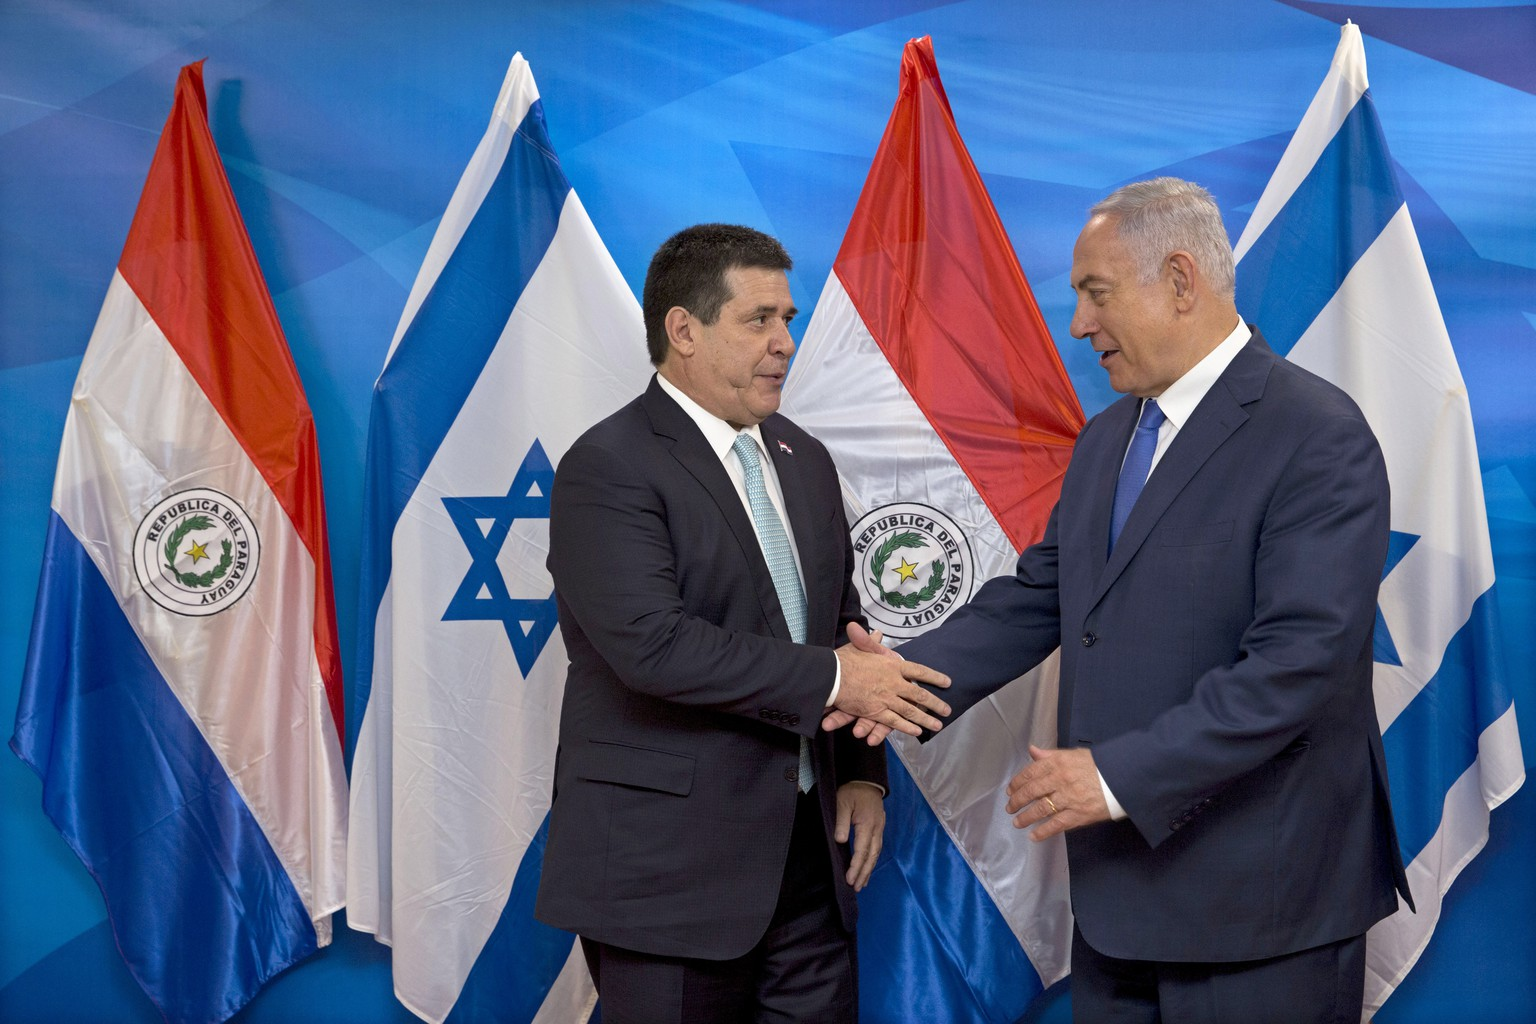 epa06754025 Israeli Prime Minister Benjamin Netanyahu (R) shakes hands with Paraguay's President Horacio Cartes during their meeting at the Prime Minister's office in Jerusalem, 21 May 2018. Paraguay opened its new embassy in Jerusalem on 21 May, following in the footsteps of the United States and Guatemala.  EPA/SEBASTIAN SCHEINER / POOL